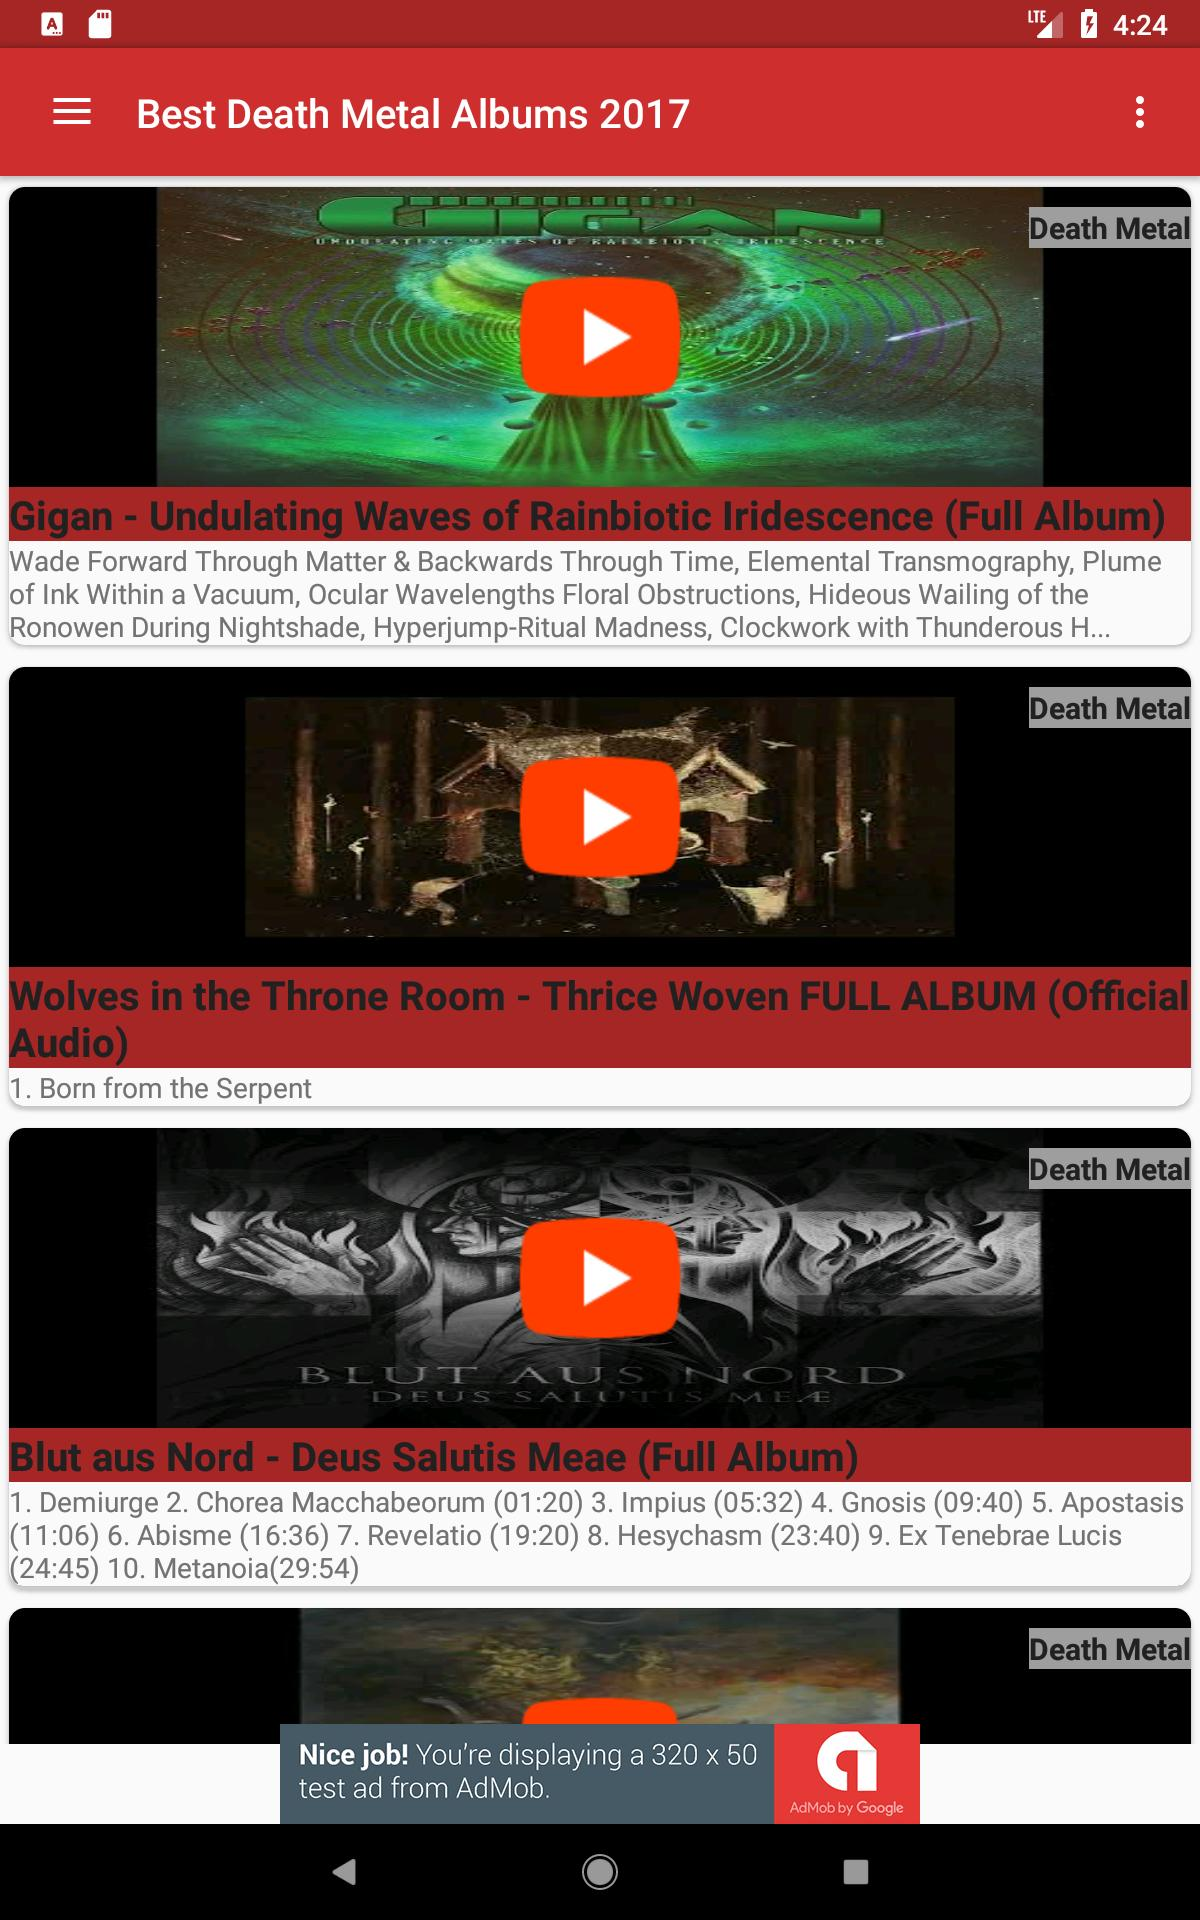 Top Death Metal Albums 2017 for Android - APK Download